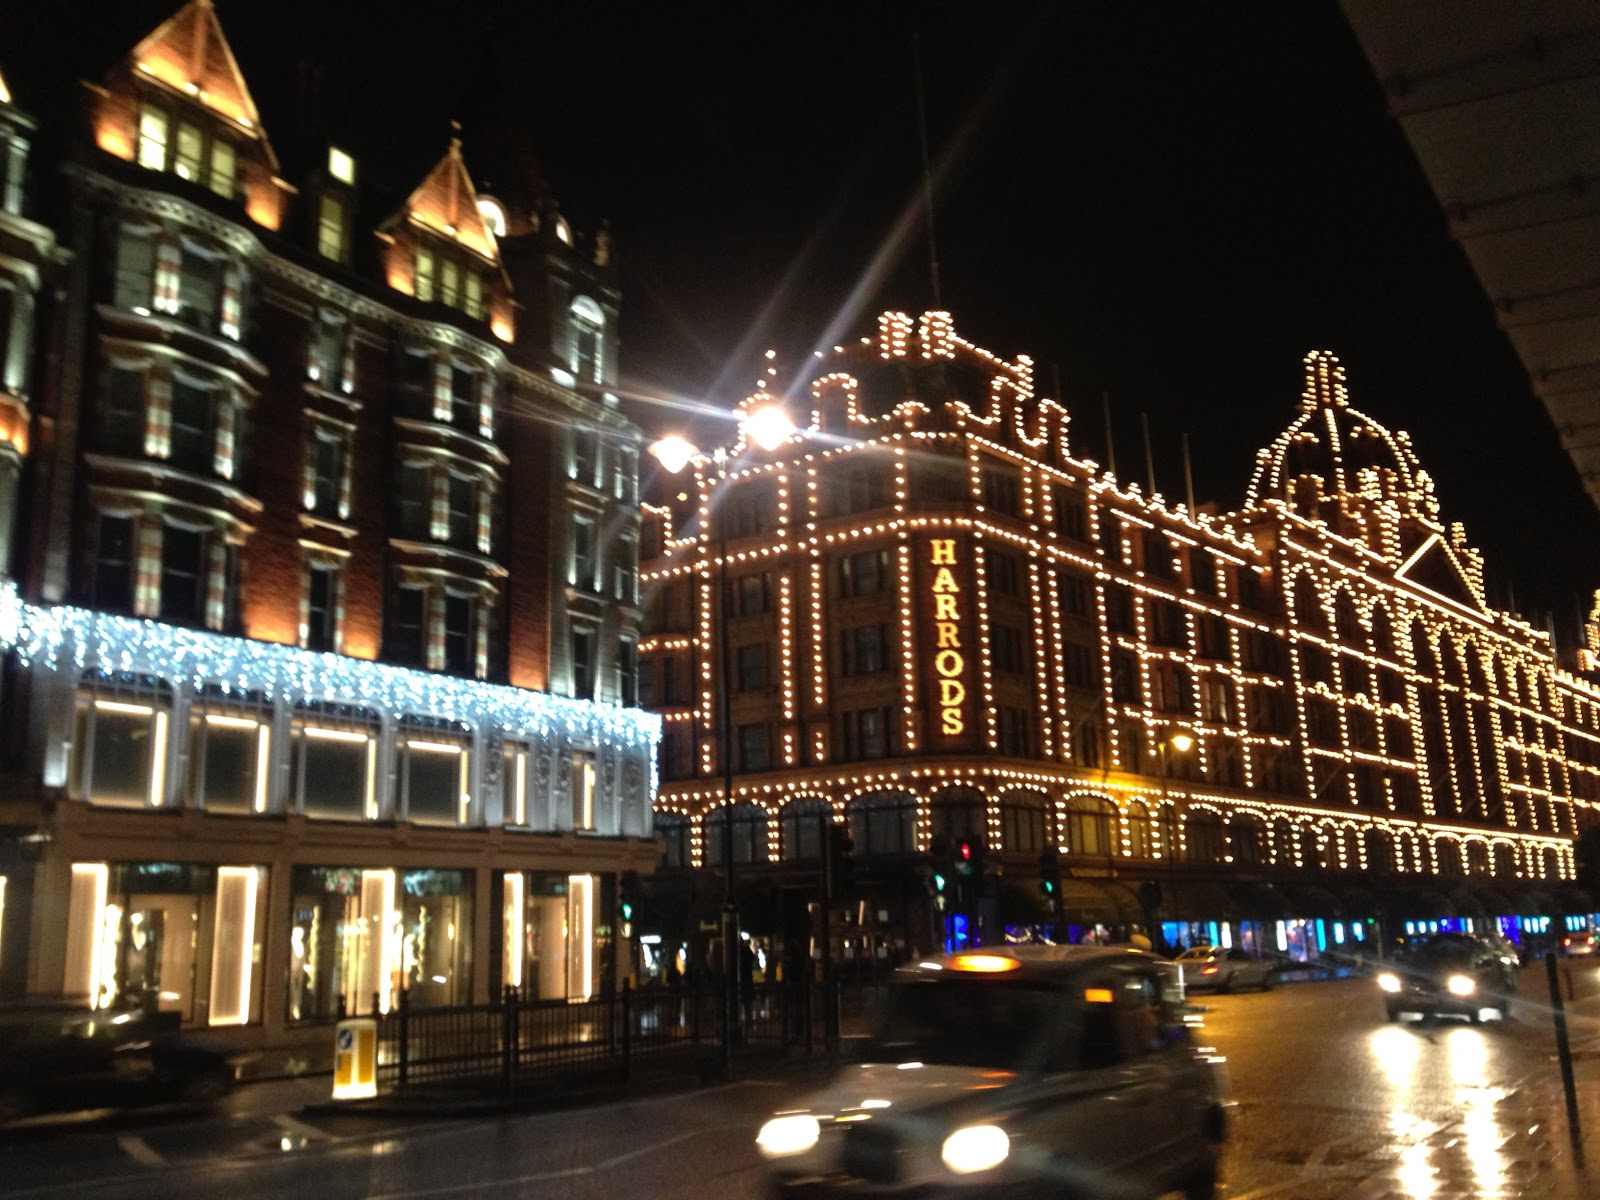 harrods luxury department store in london. Decorative lighting on the building's exterior facade seen during night time, london taxi passing the street in foreground.